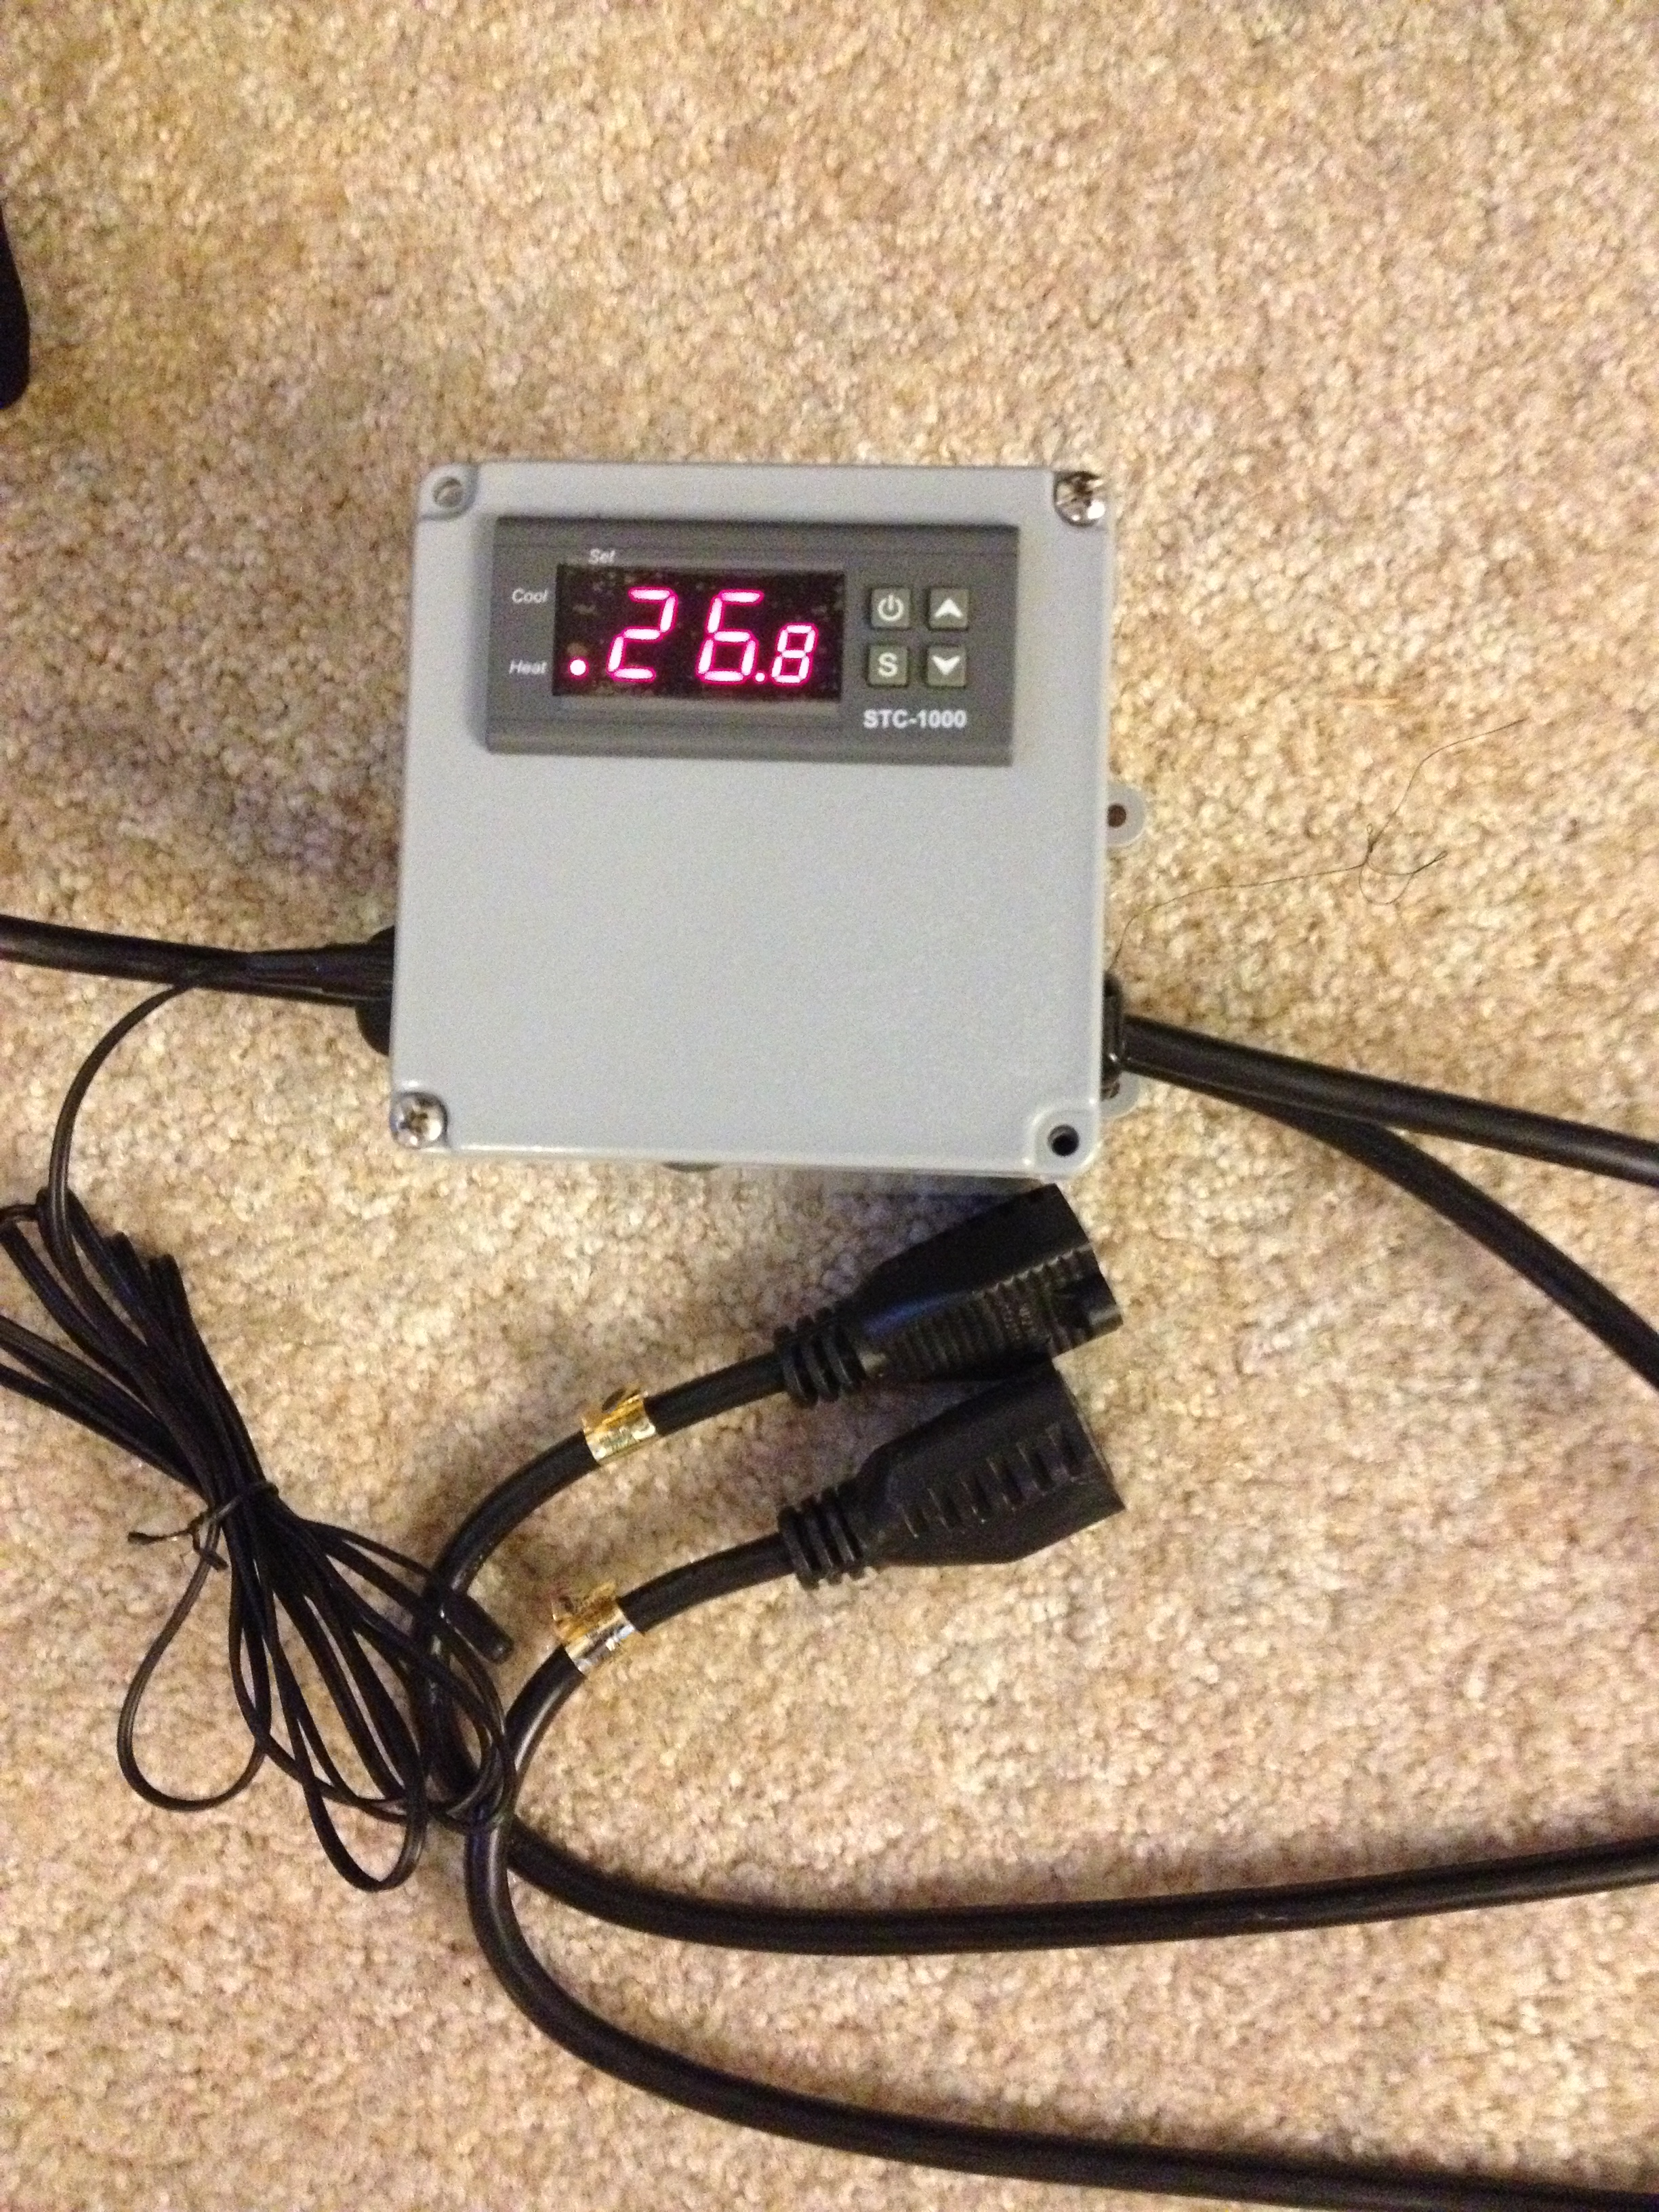 Home Brewing Equipment Small Space Brewer Page 3 Stc1000 Temp Controller Wiring The Homebrew Forum Image